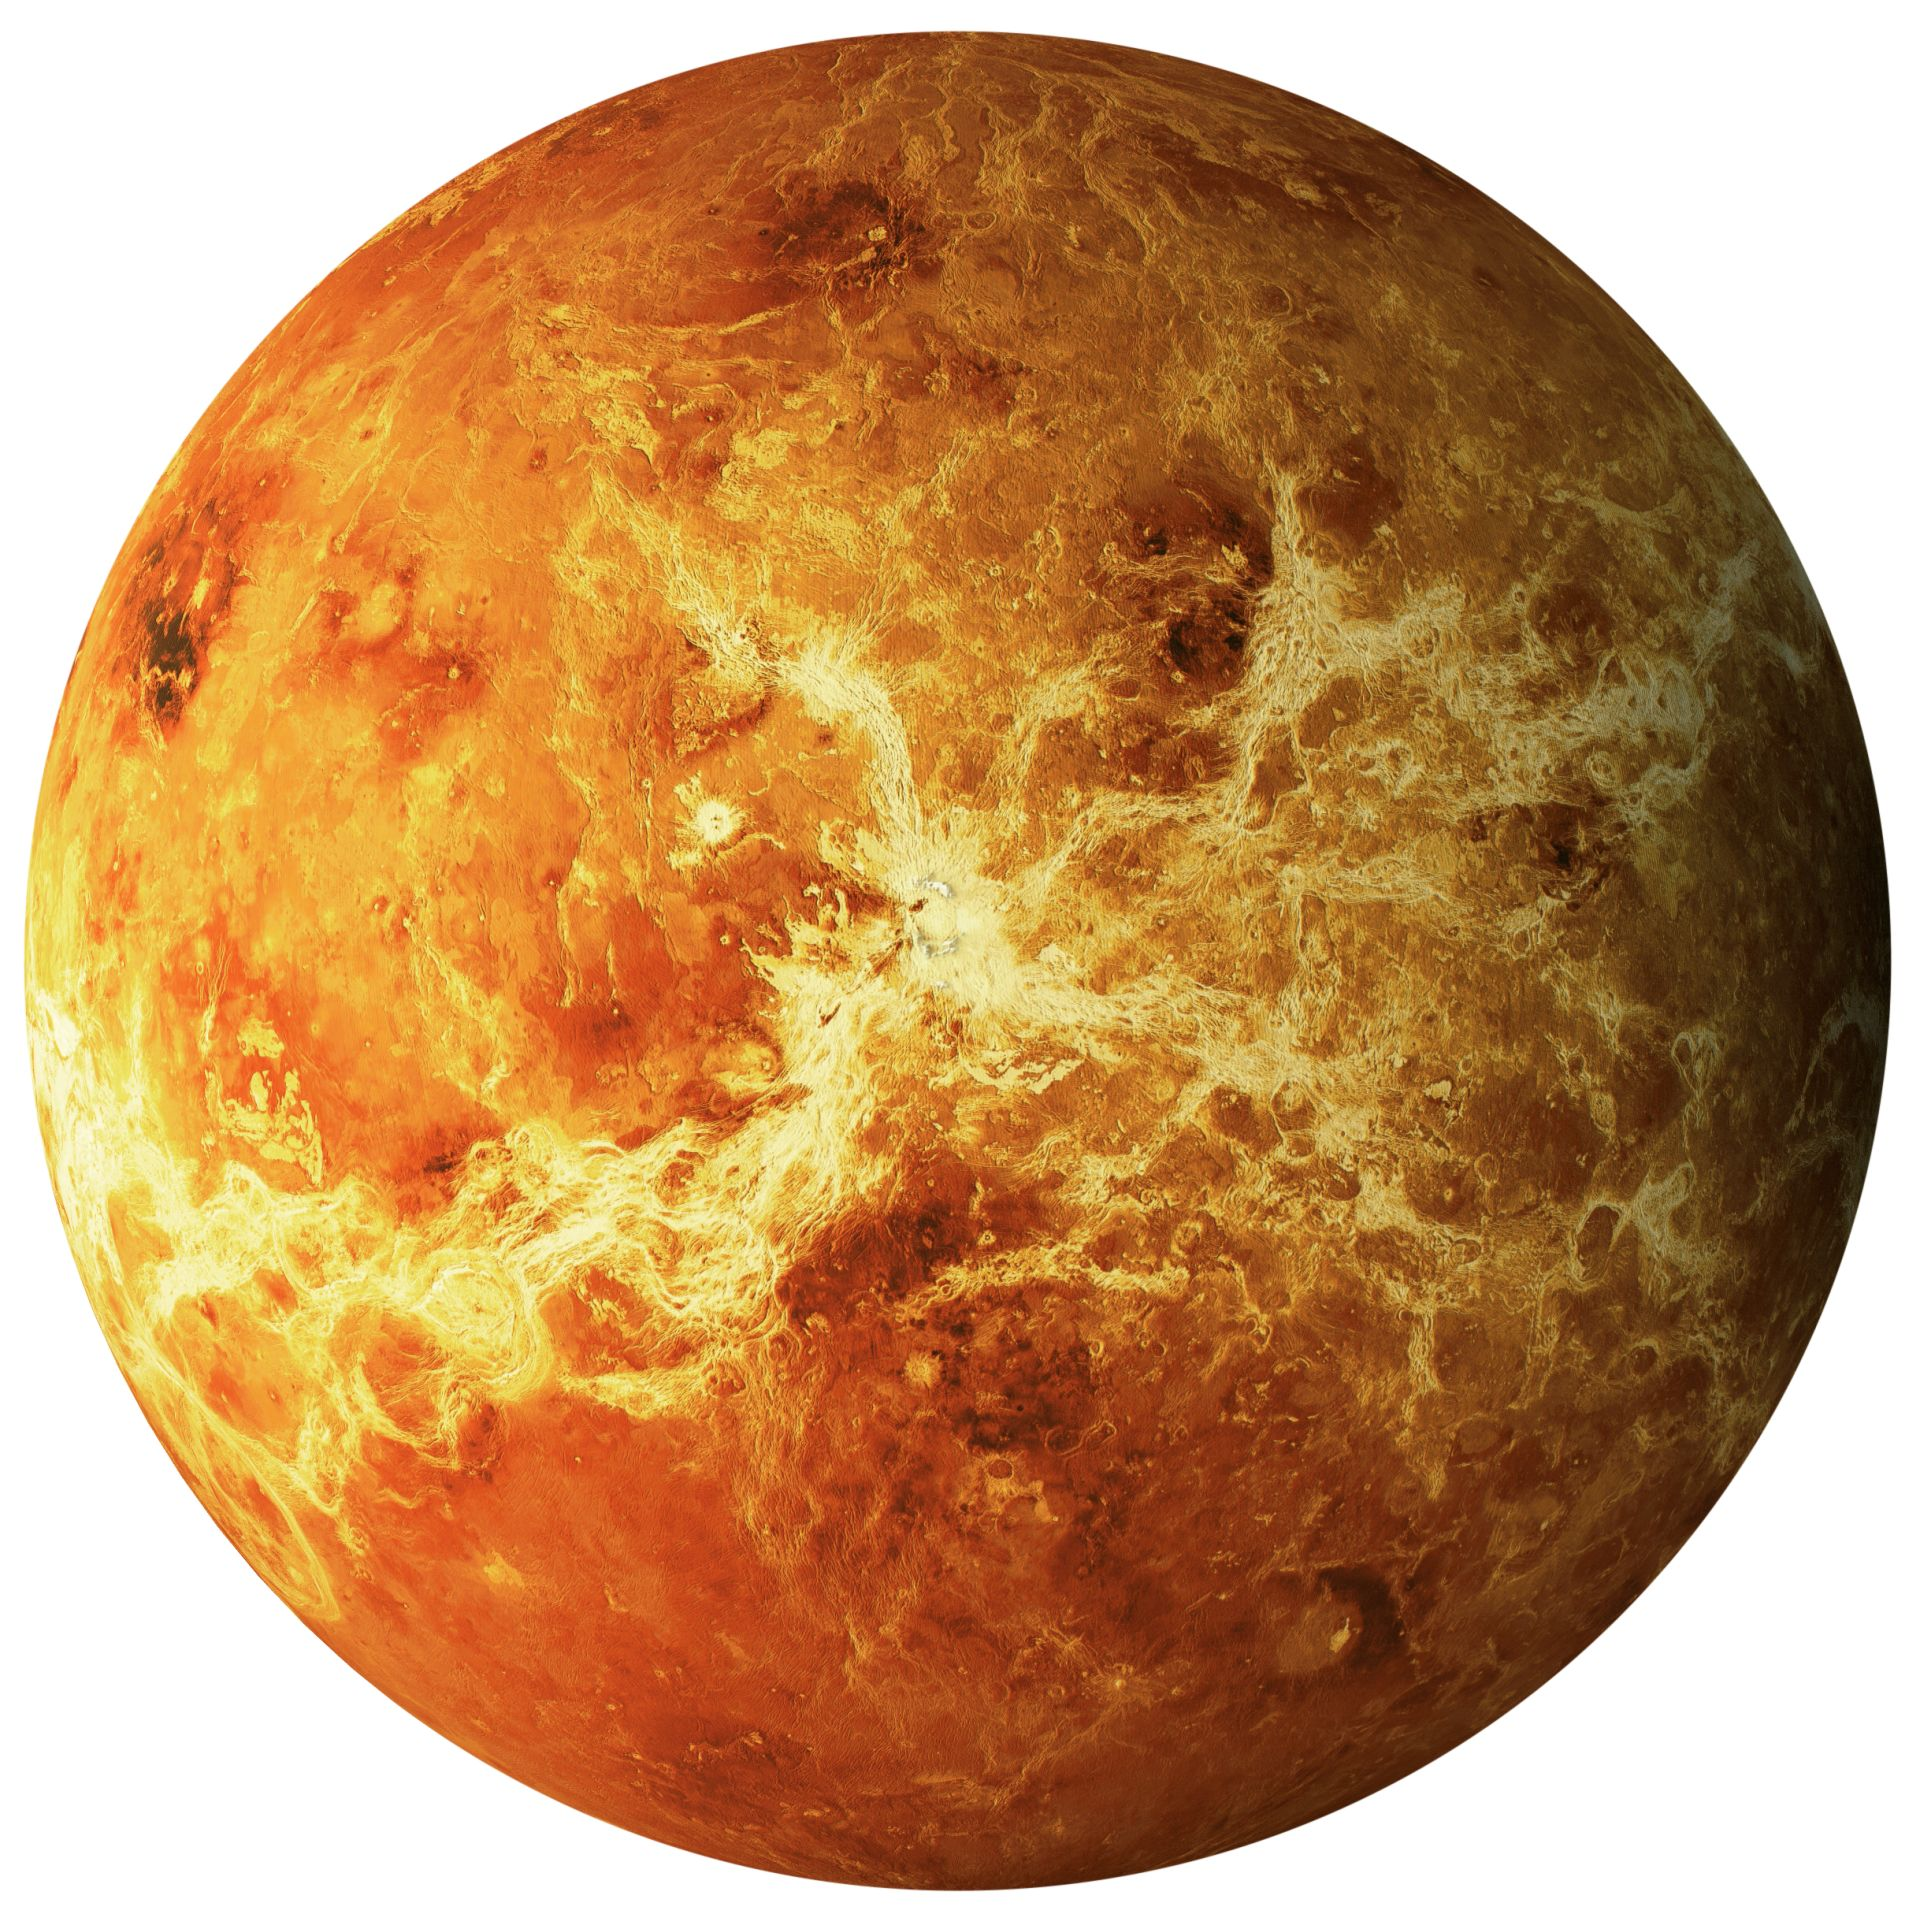 venus temperature